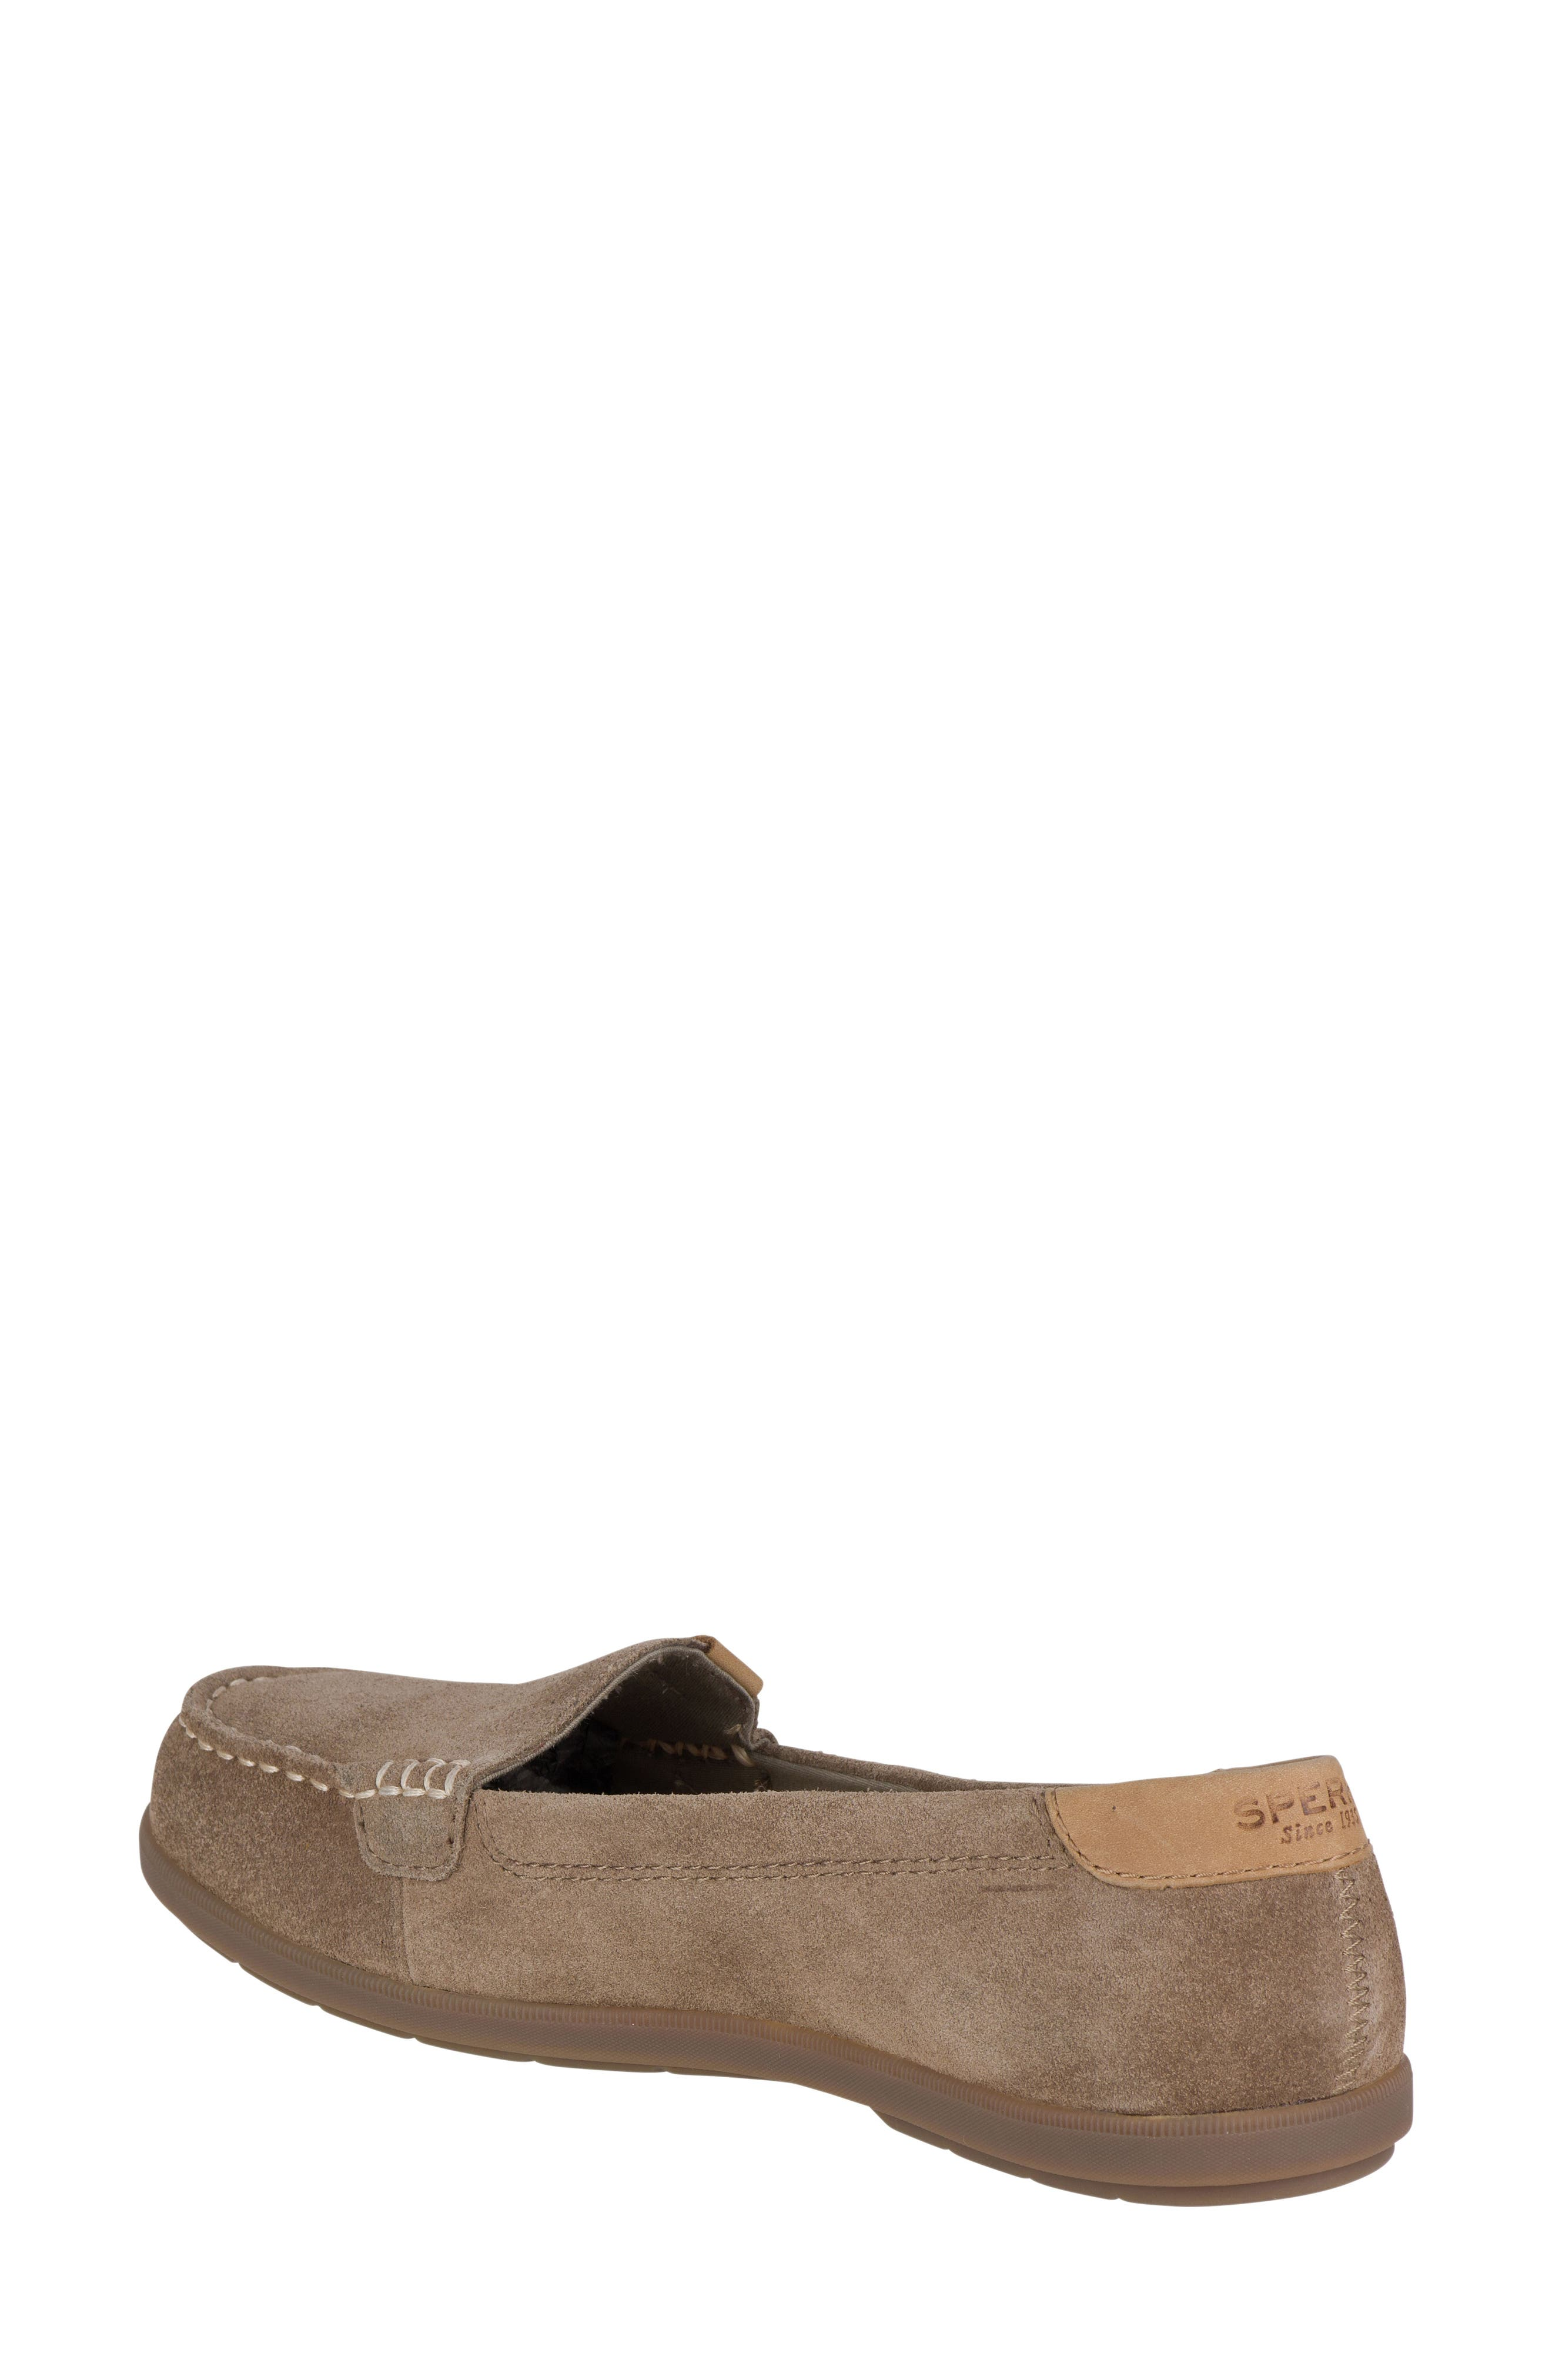 Coil Mia Loafer,                             Alternate thumbnail 8, color,